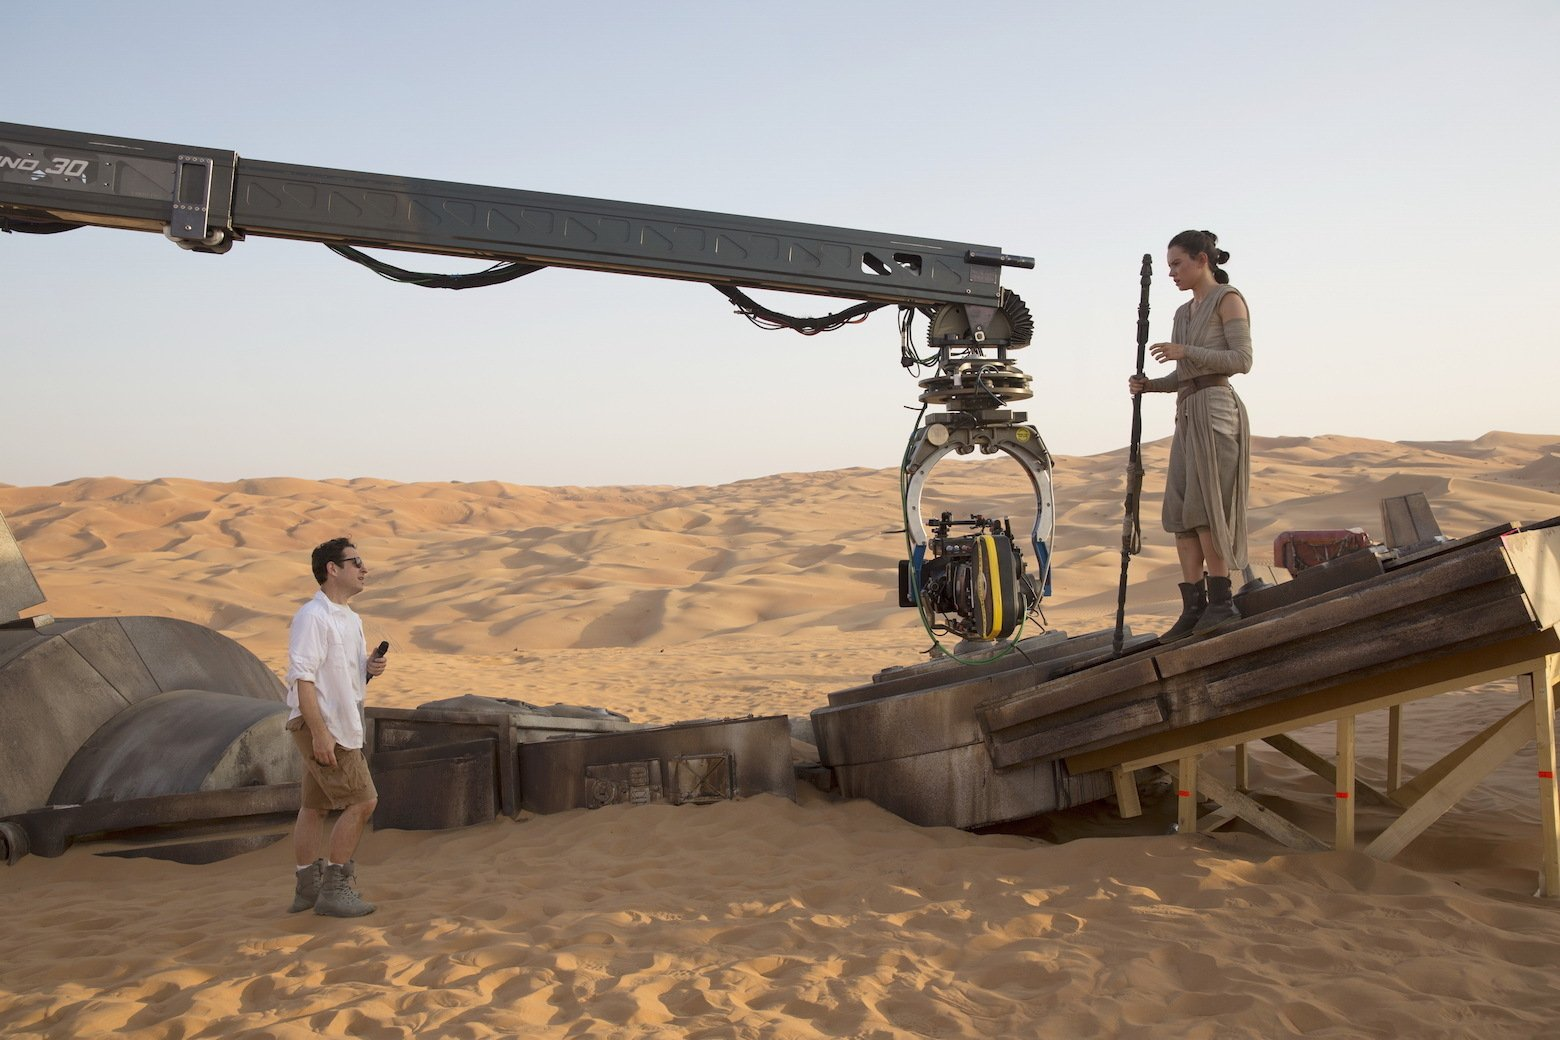 Star Wars VII The Force Awakens 13 - JJ Abrams and Daisy Ridley on set